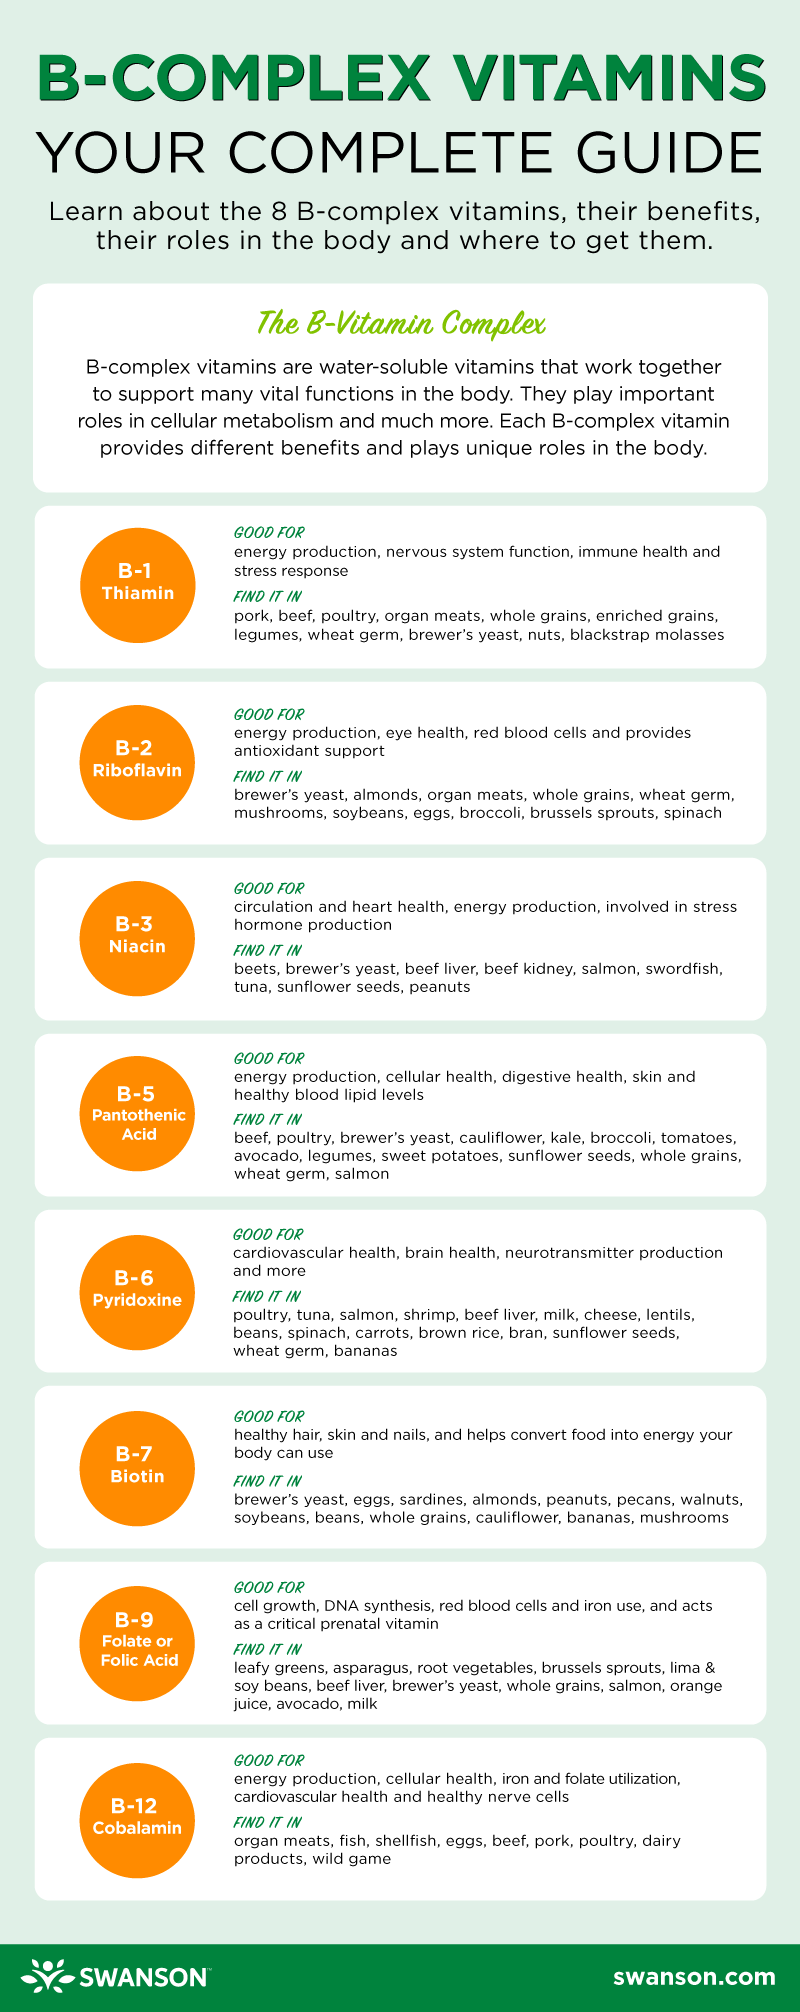 B-Vitamins Guide Infographic